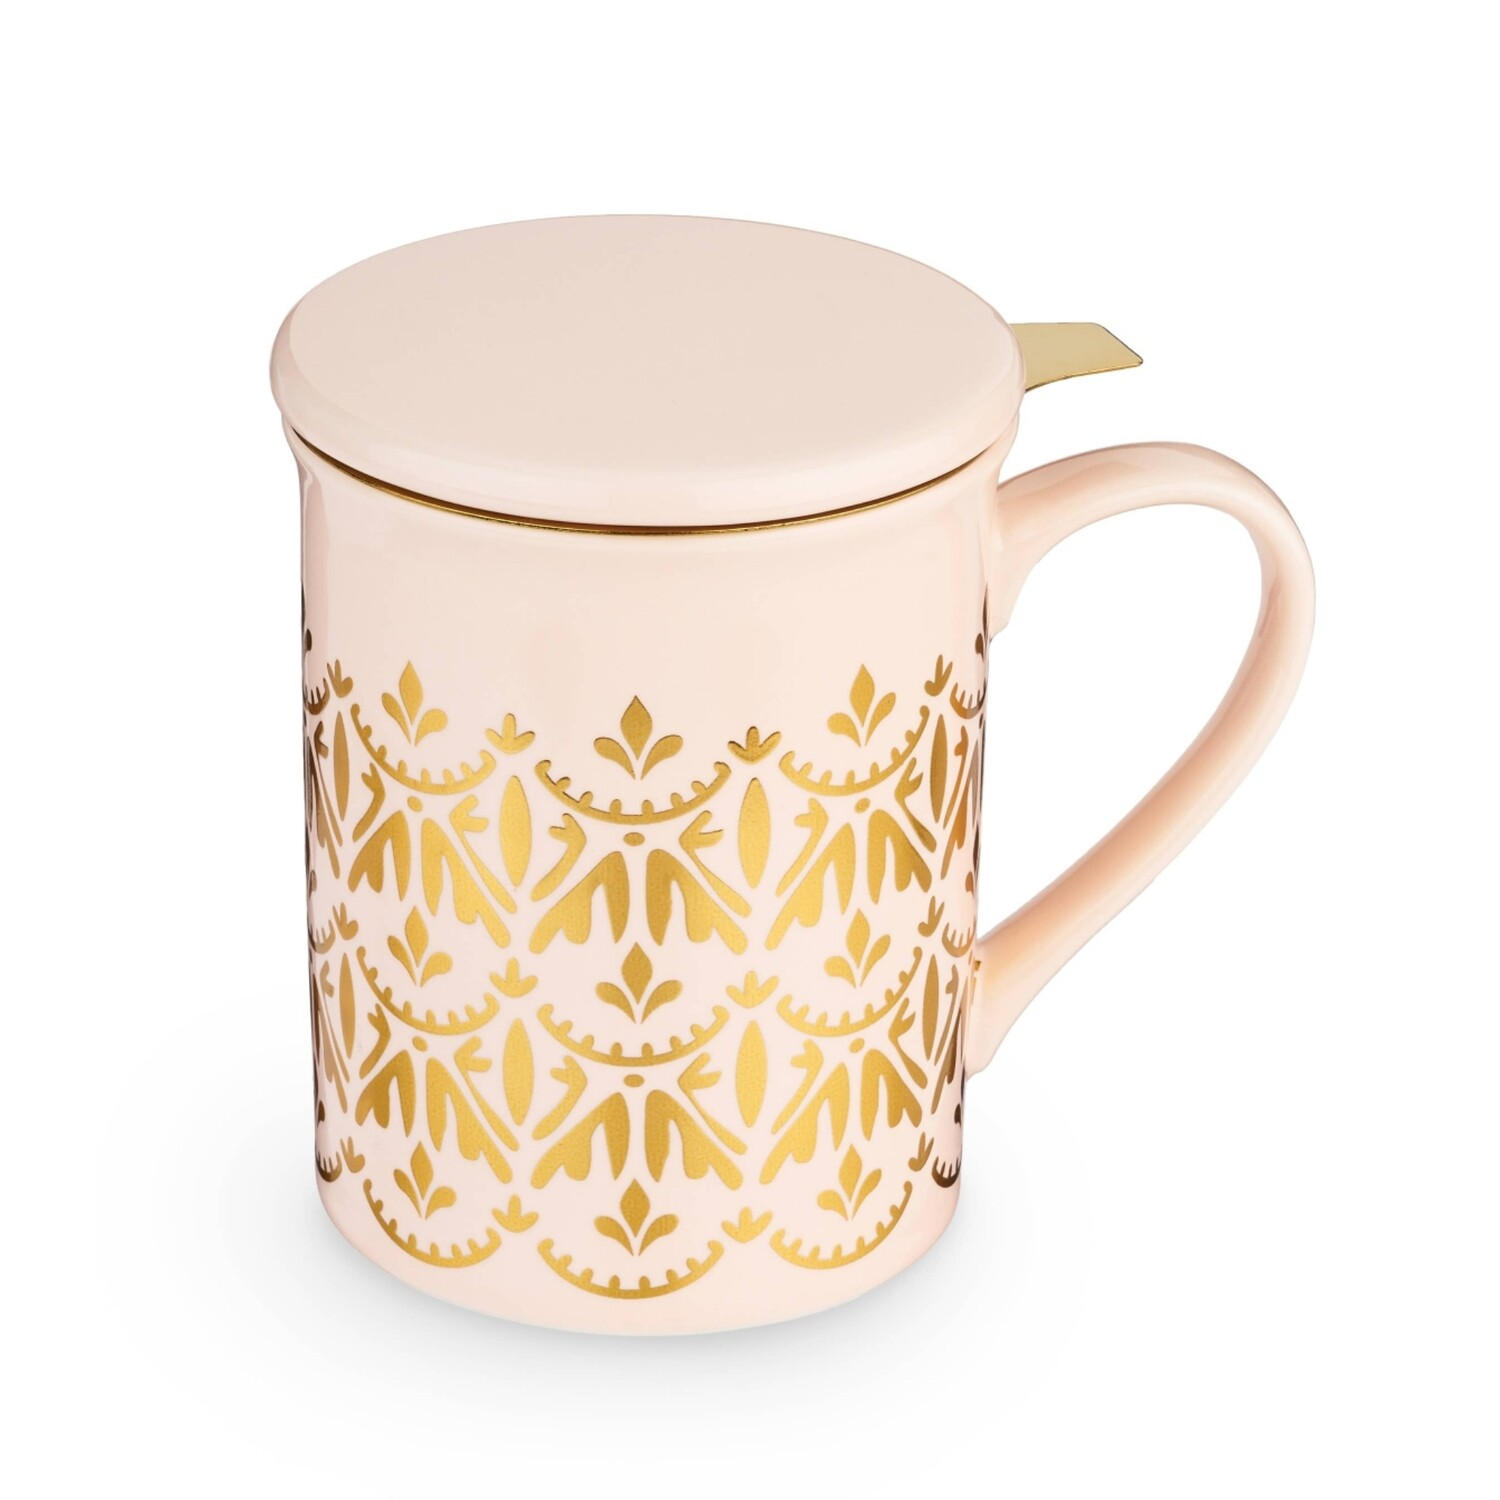 Pinky Up Annette Ceramic Tea Mug with Infuser